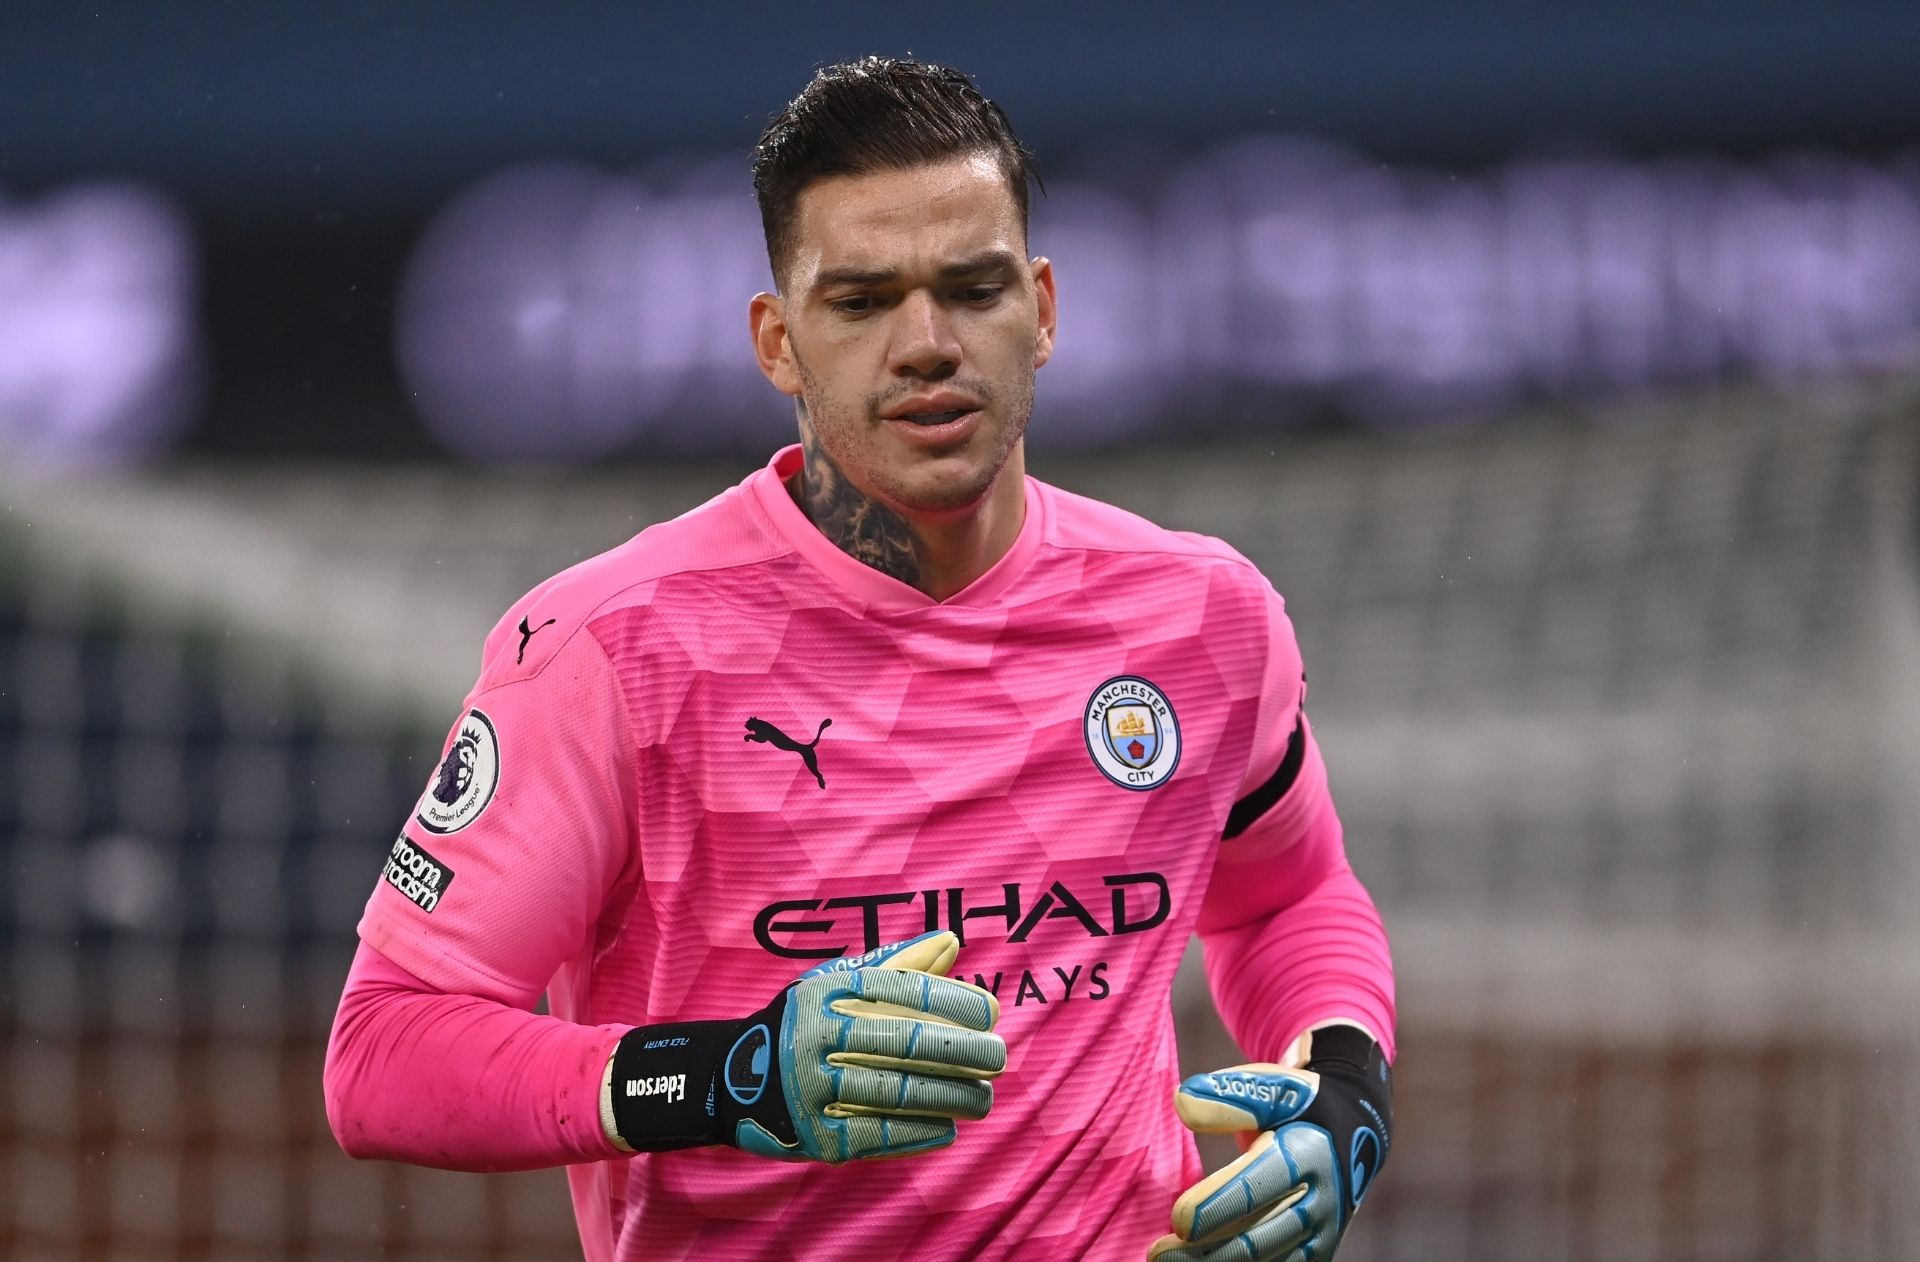 Ederson could be handed Man City penalty duties - Guardiola